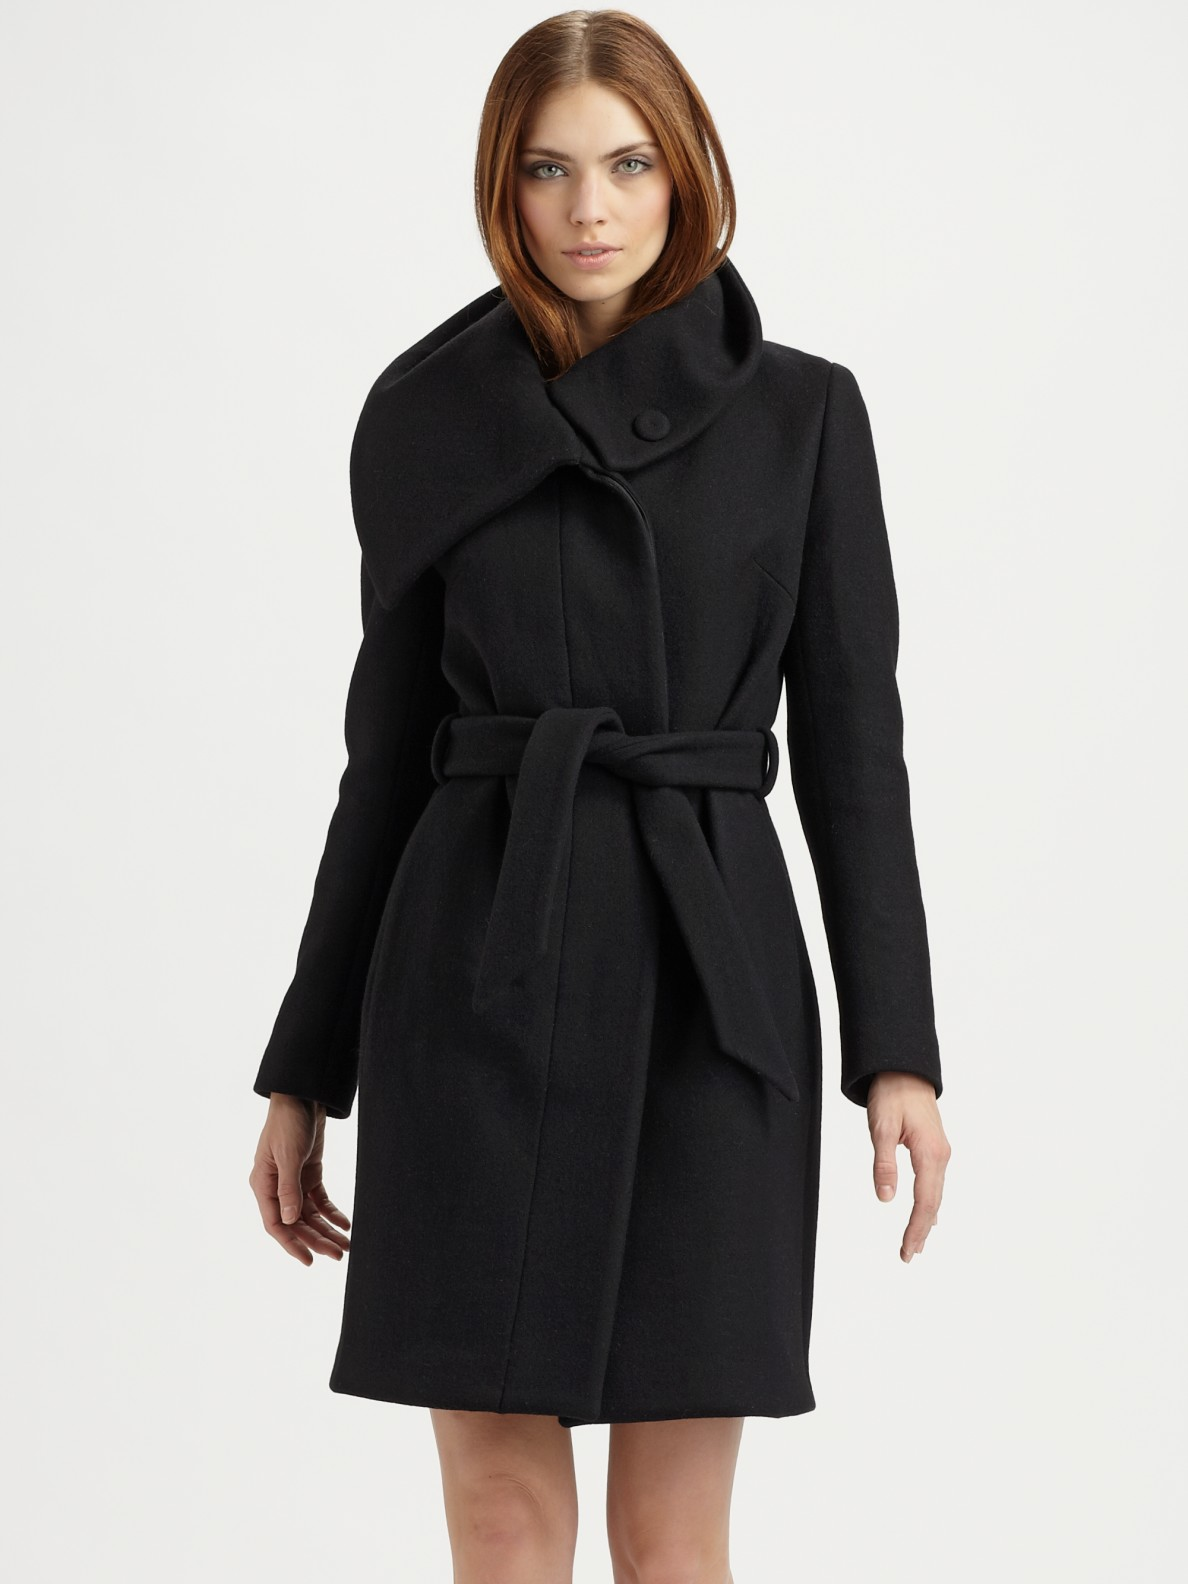 Find great deals on eBay for womens black belted wool trench coat. Shop with confidence.